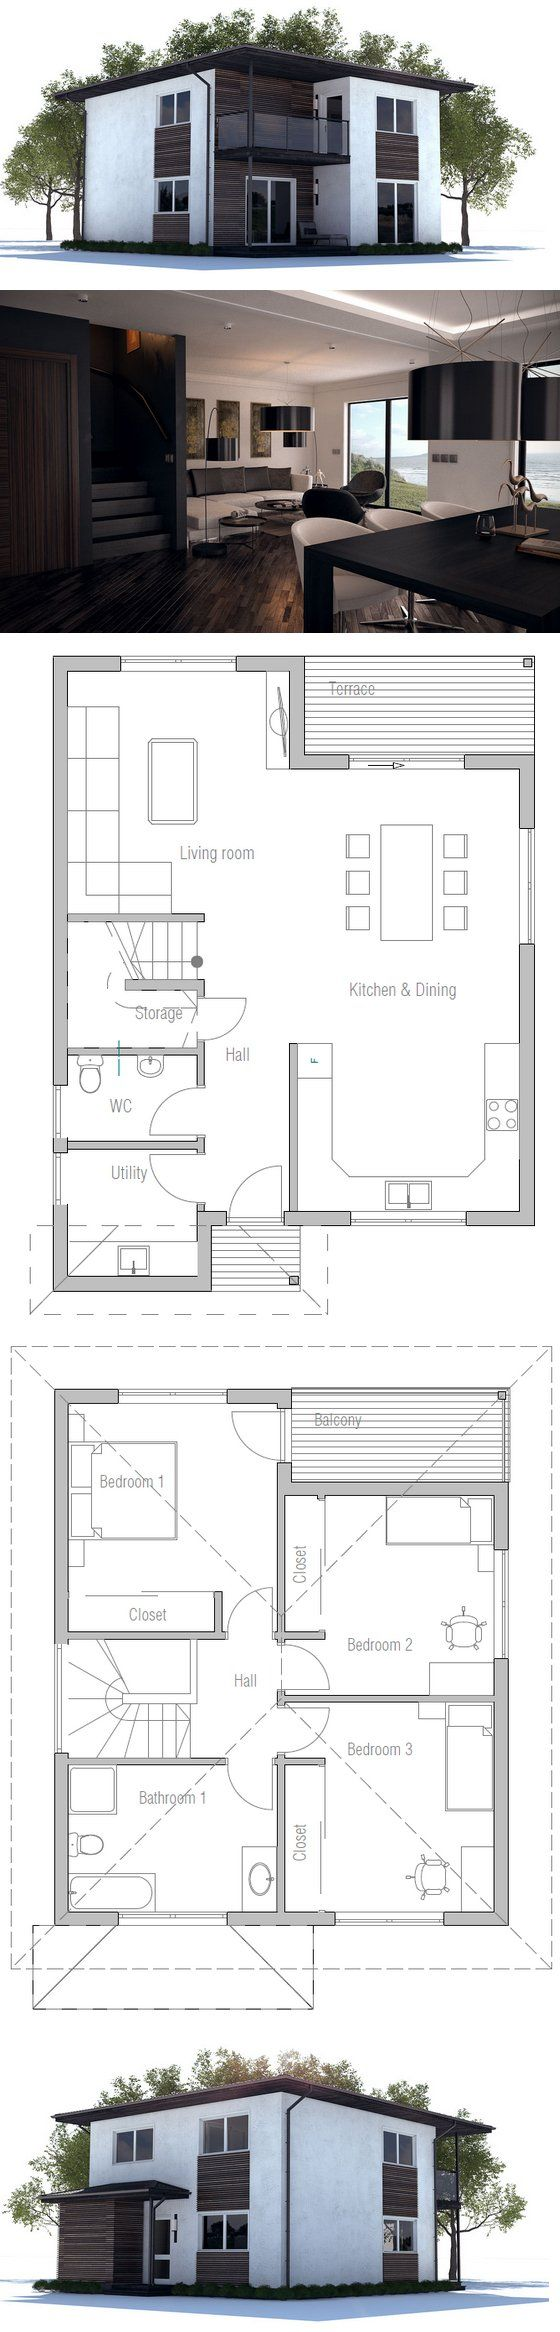 House Plan from wwwconceptHomecom House Design 2014